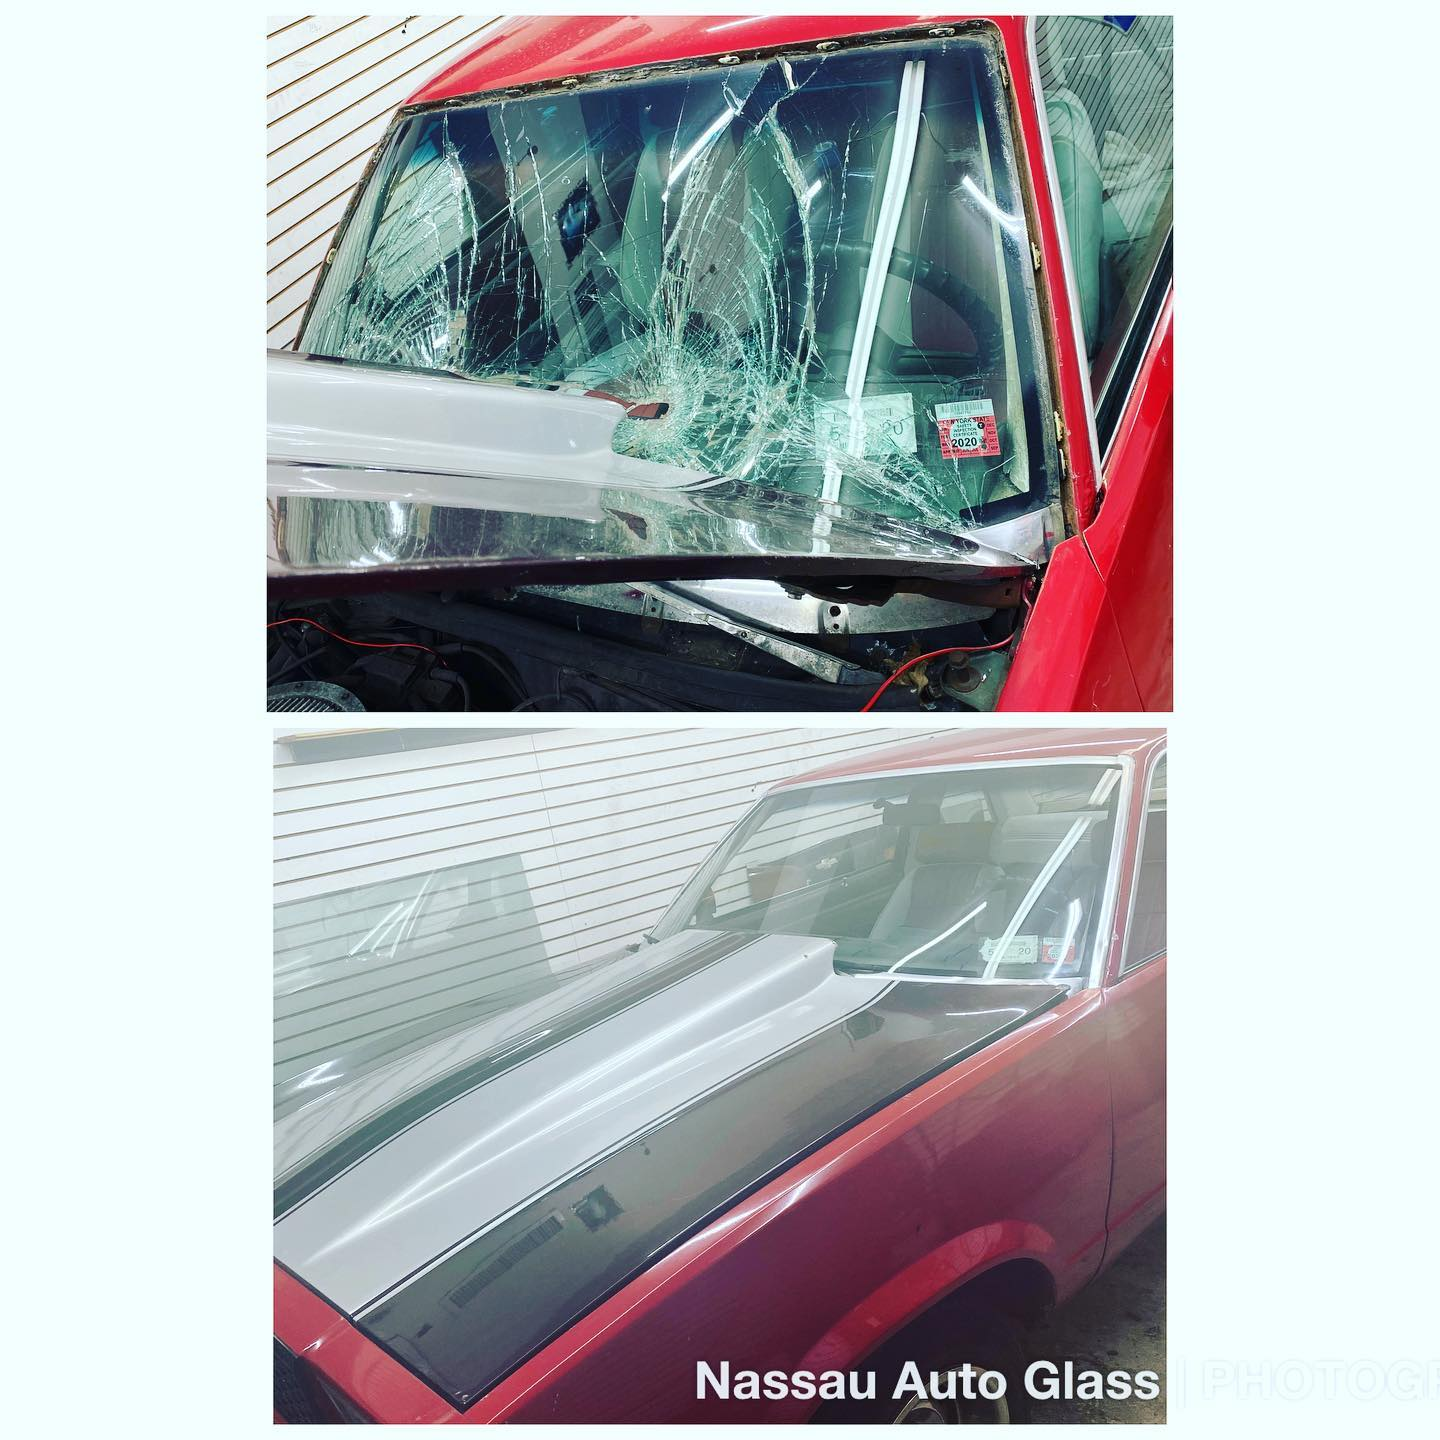 Nassau Auto Glass Services: Before & After Picture 13